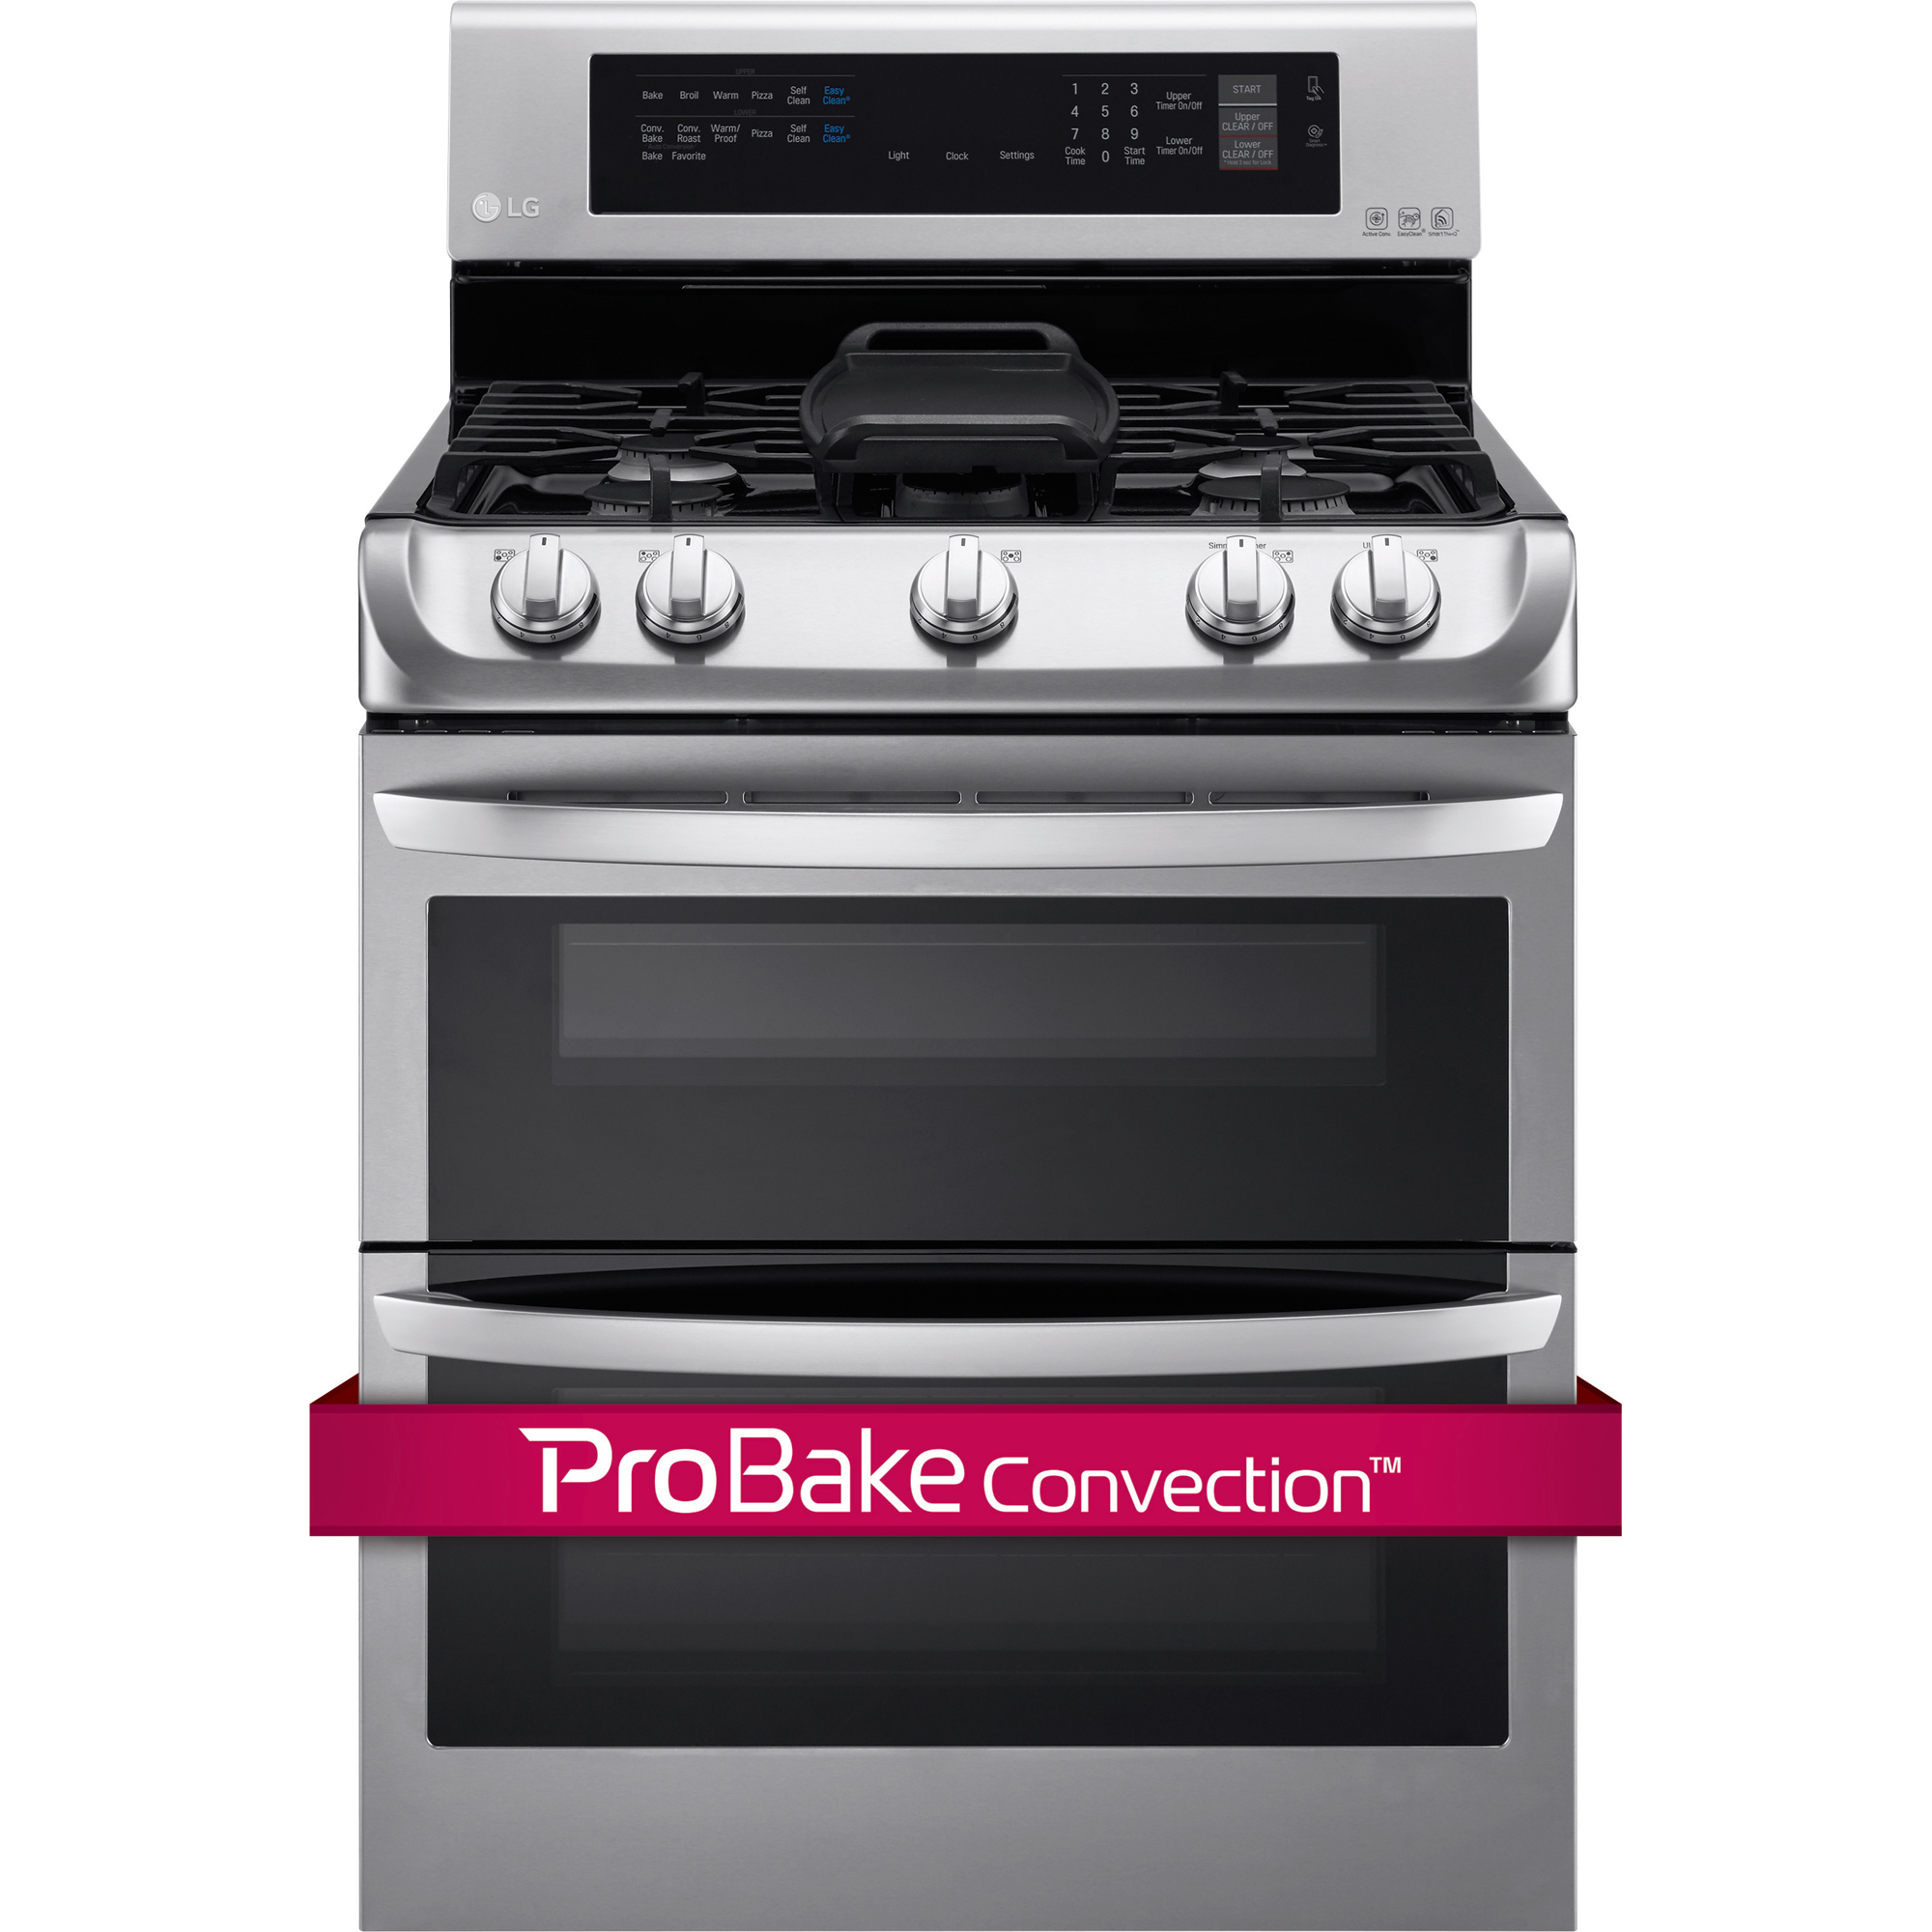 LG LDG4315ST 6.9 cu. ft. Gas Double Oven Range w/ ProBake Convection™  EasyClean® & Gliding Rack – Stainless Steel